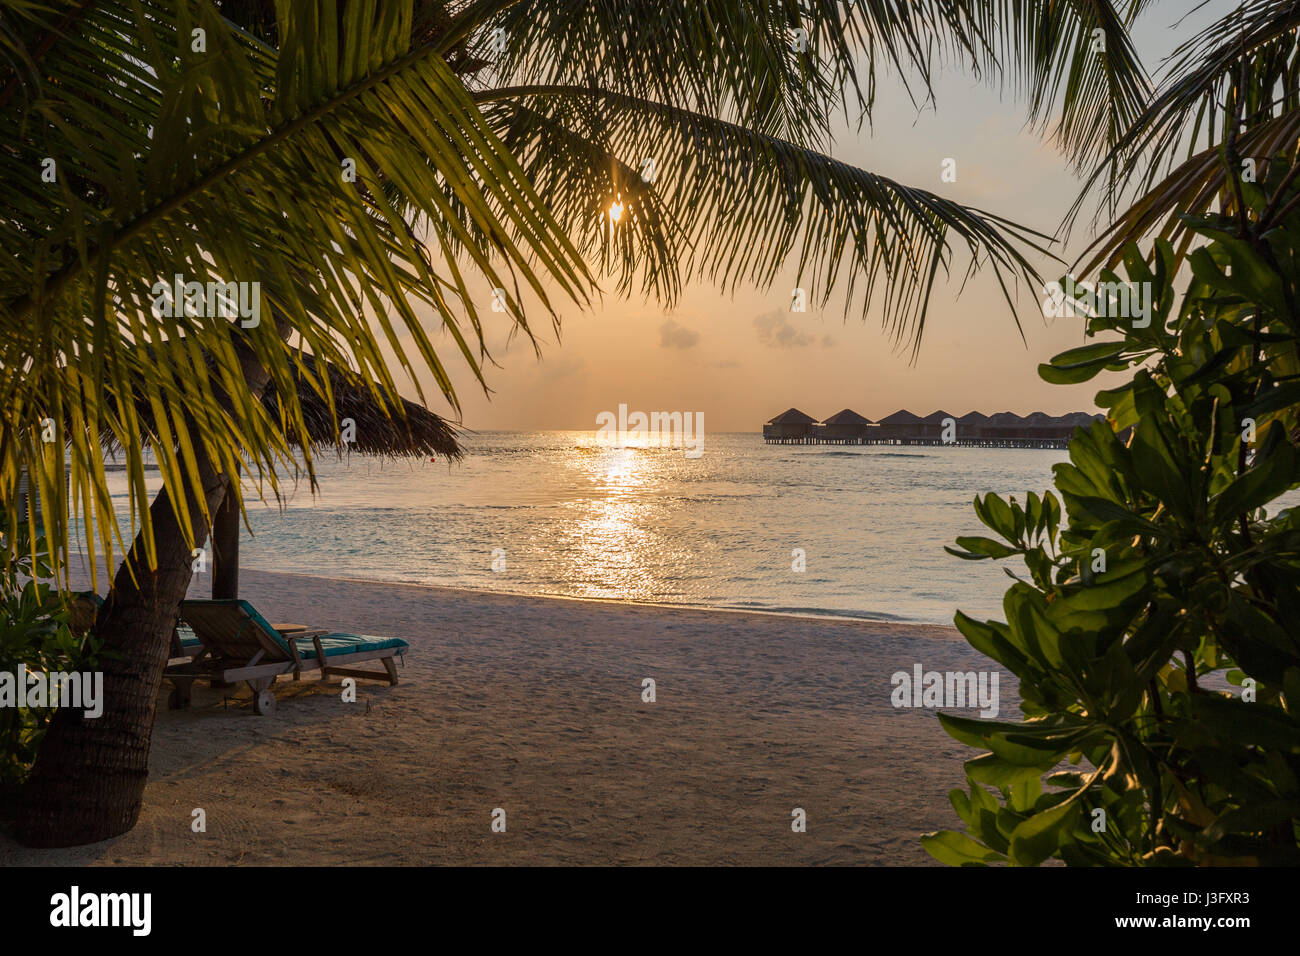 Tropical Paradise Sunset Sunrise View of Over Water Bungalows with Orange Red Sky - Stock Image